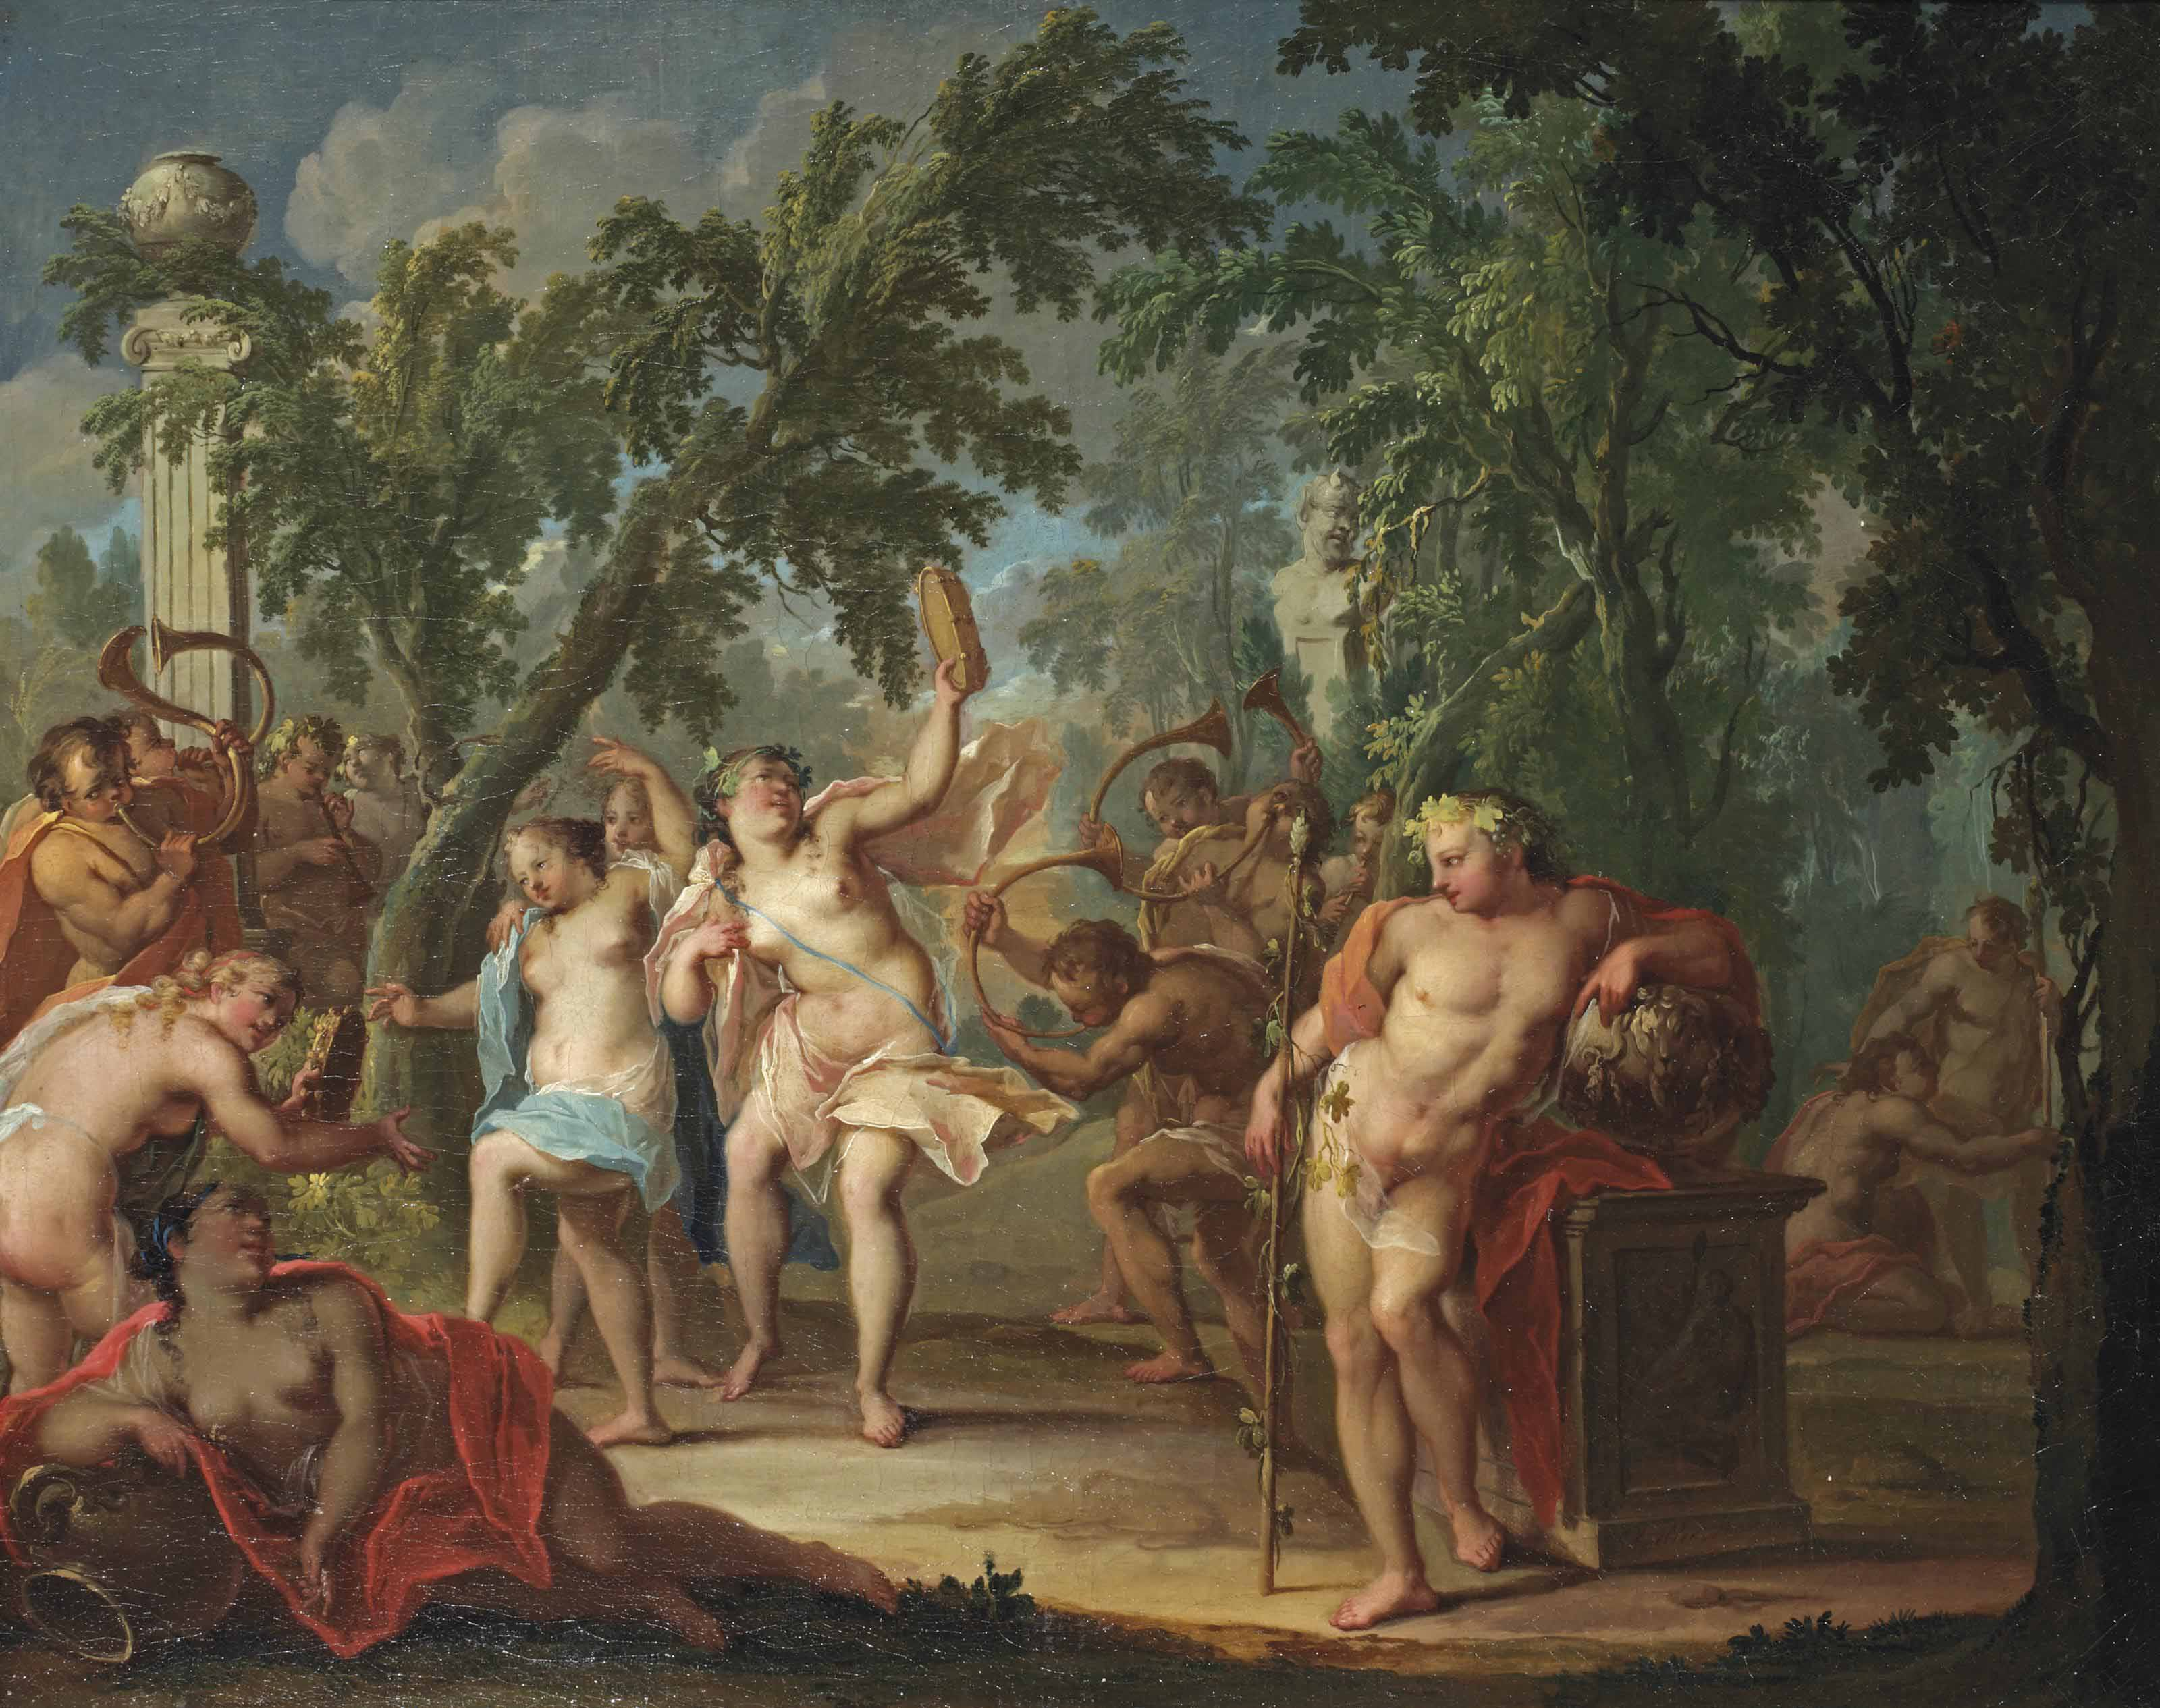 A bacchanal in a wooded landscape with nymphs dancing and satyrs blowing horns